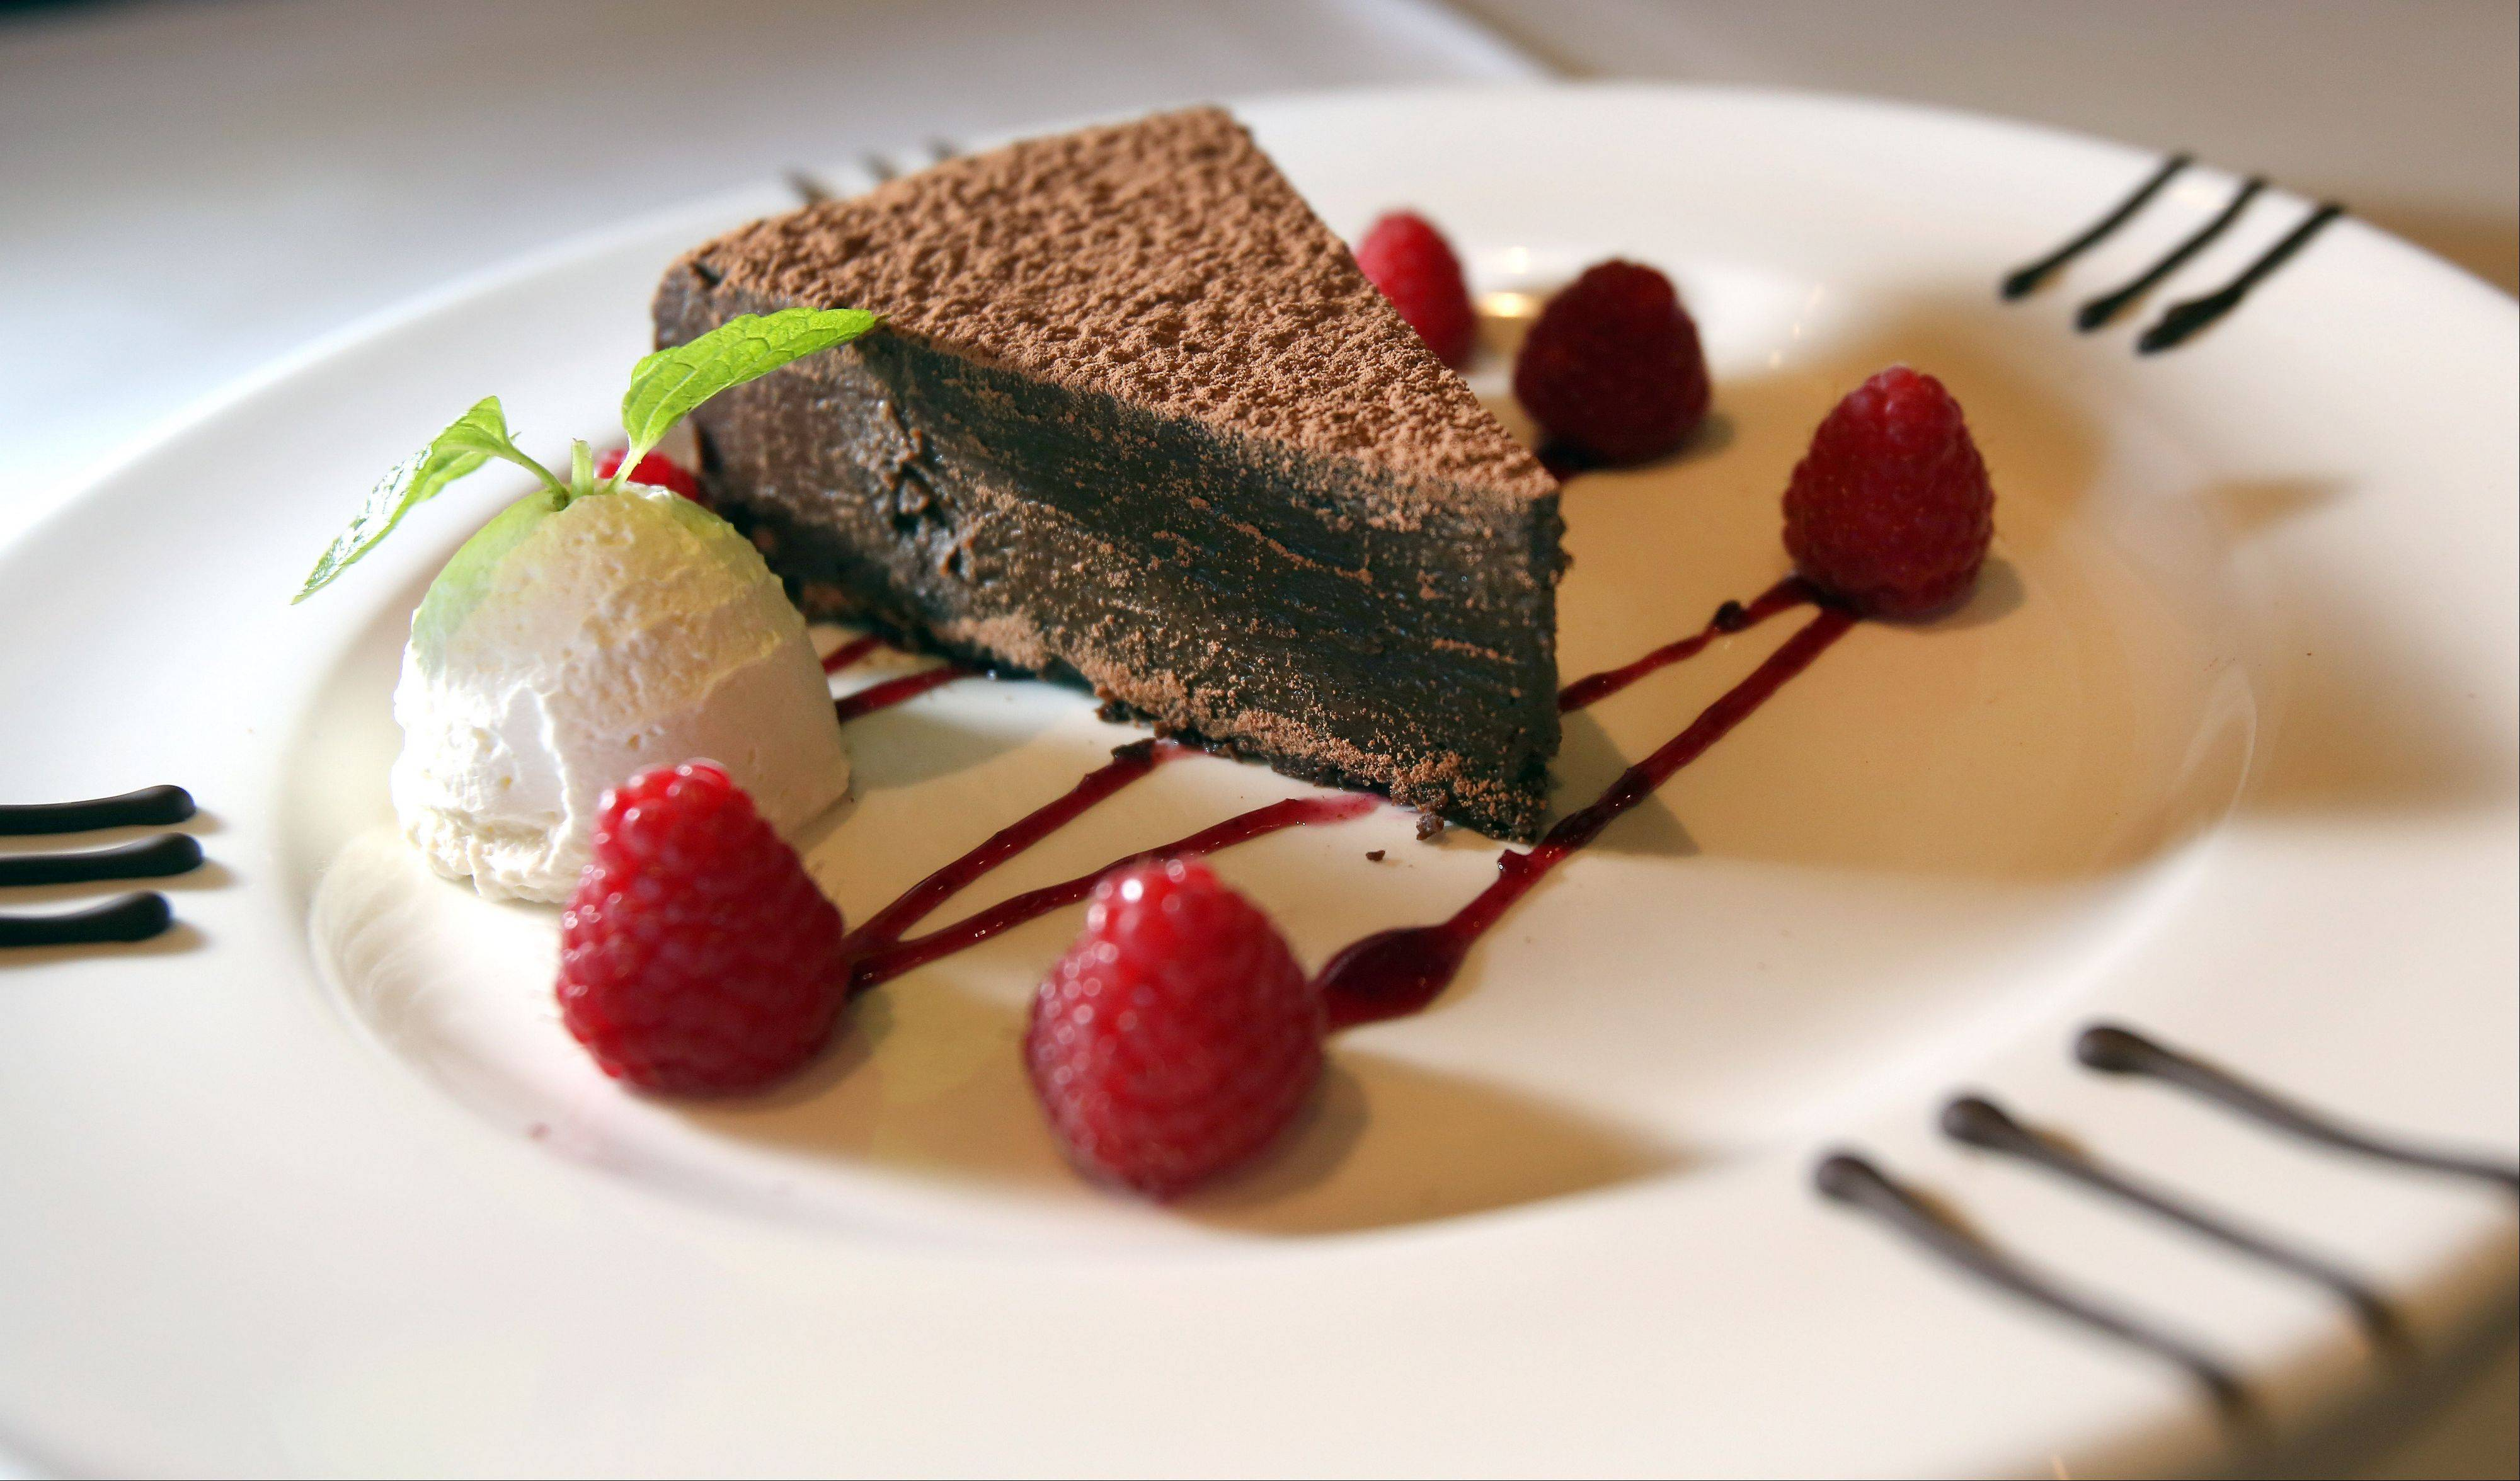 Flourless chocolate cake is a tempting ending at The Capital Grille in Lombard during Chicago Restaurant Week.